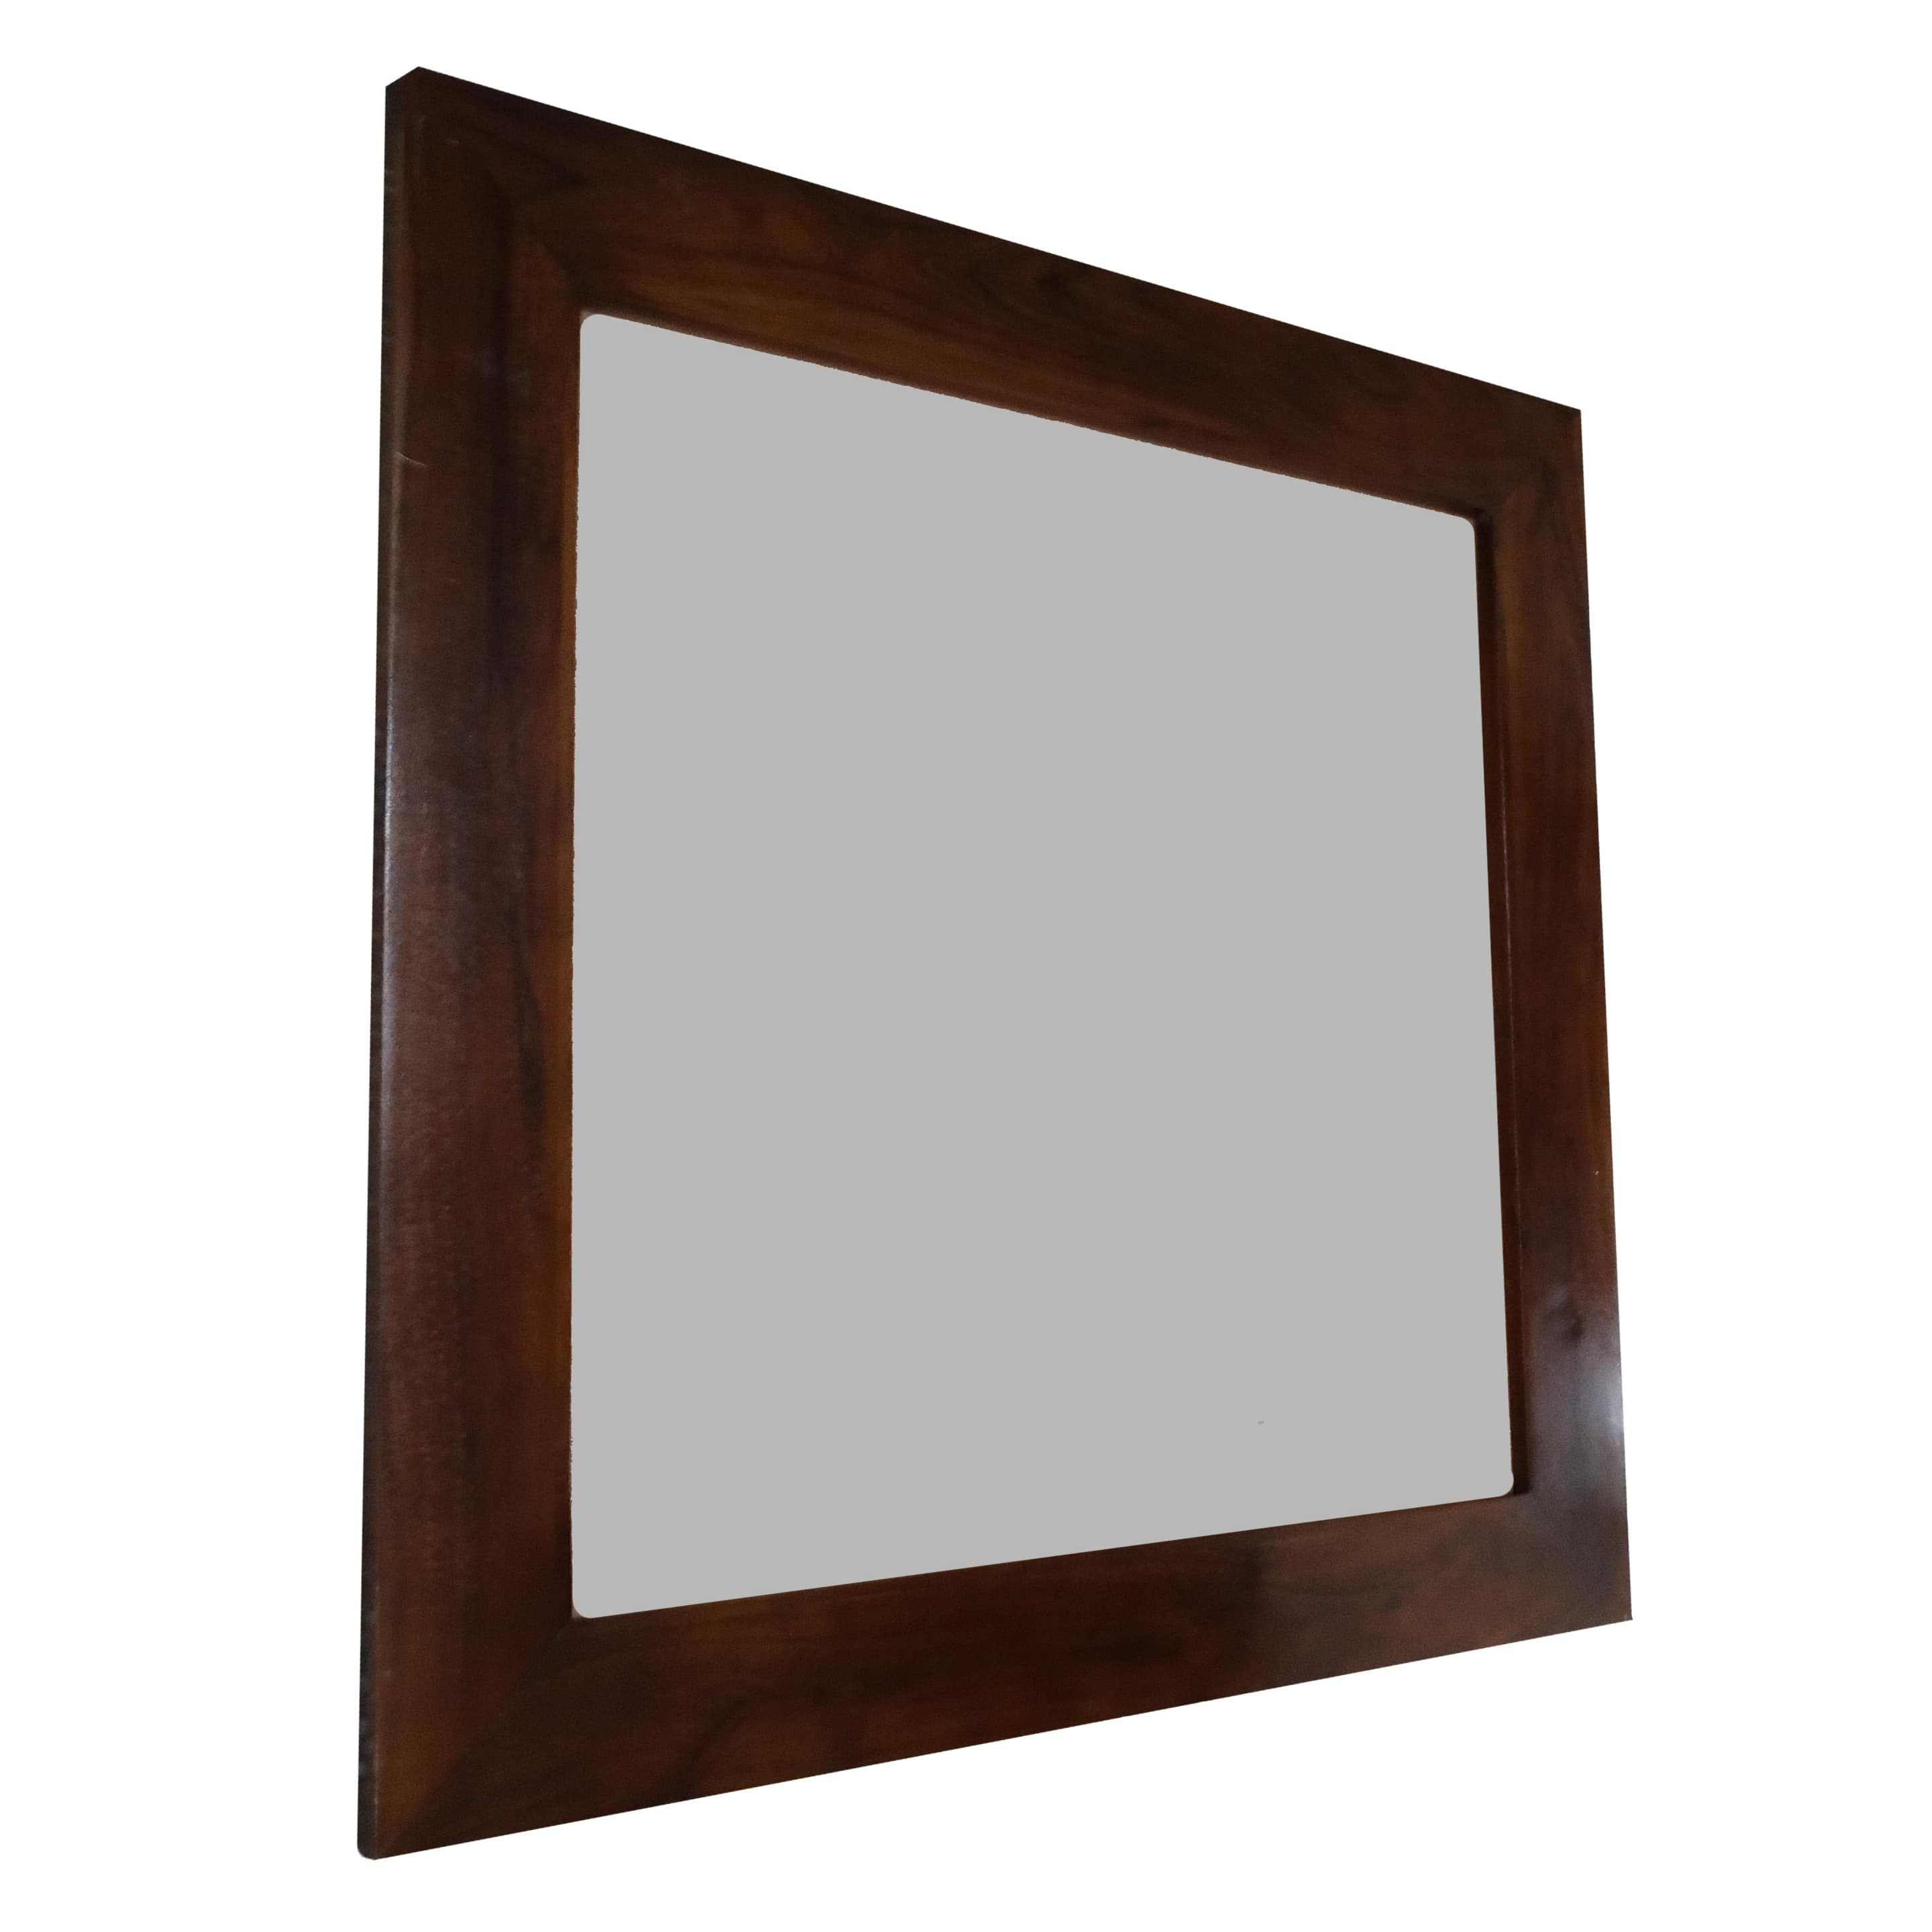 Wooden Large Wall Mirror Square Acacia Wood 90x90 Cms Buy Wooden Mirror Shelf With Hooks Acacia Shelves Vintage Natural Rectangle Wall Mount Floating Home Decor Cheap Strong Elegant Product On Alibaba Com